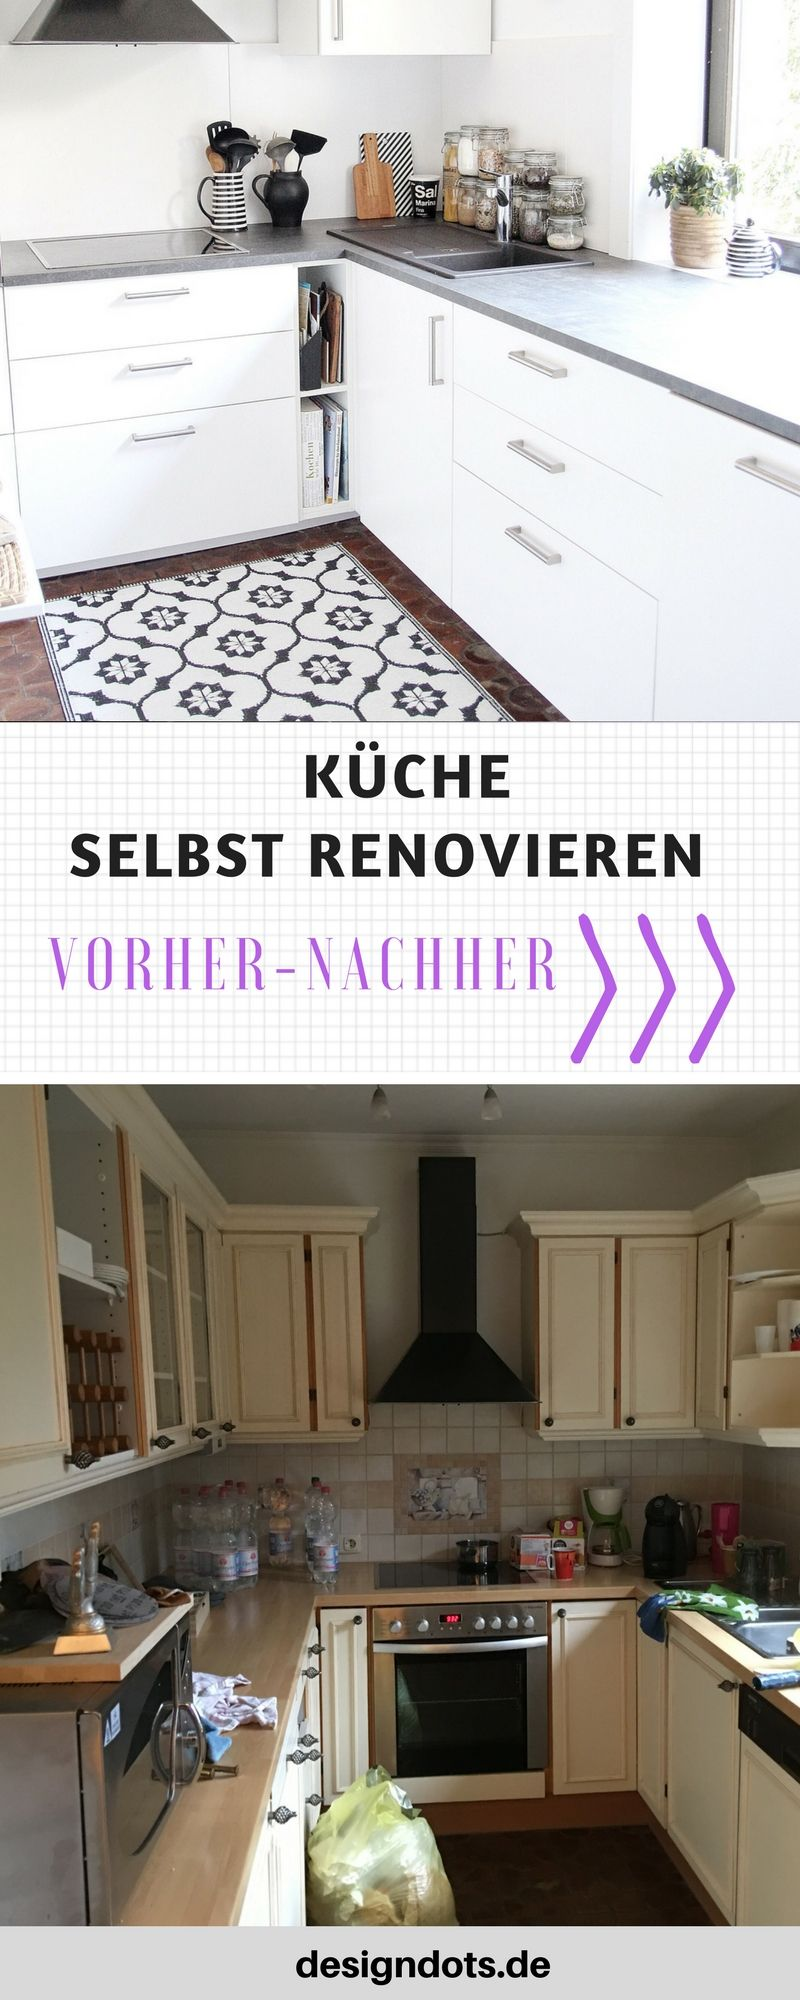 neue k che f r 1000 euro design dots blog und zuhause pinterest. Black Bedroom Furniture Sets. Home Design Ideas